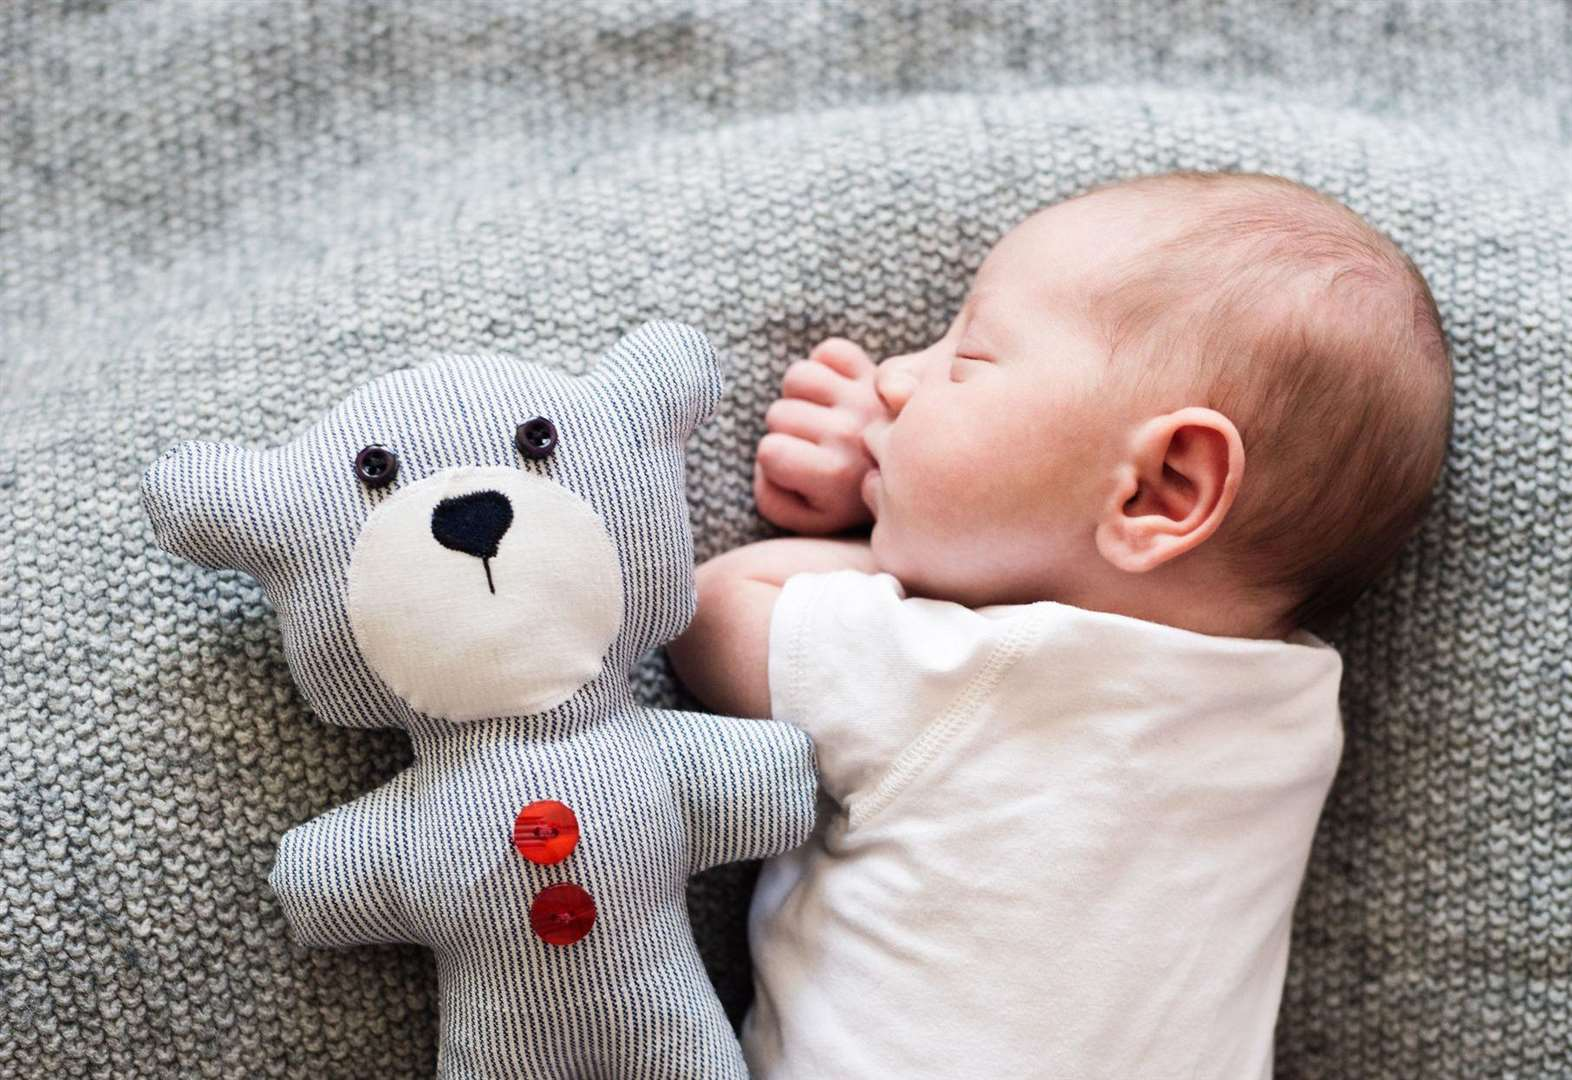 Ask the expert: What are the best ways to help a new baby sleep?